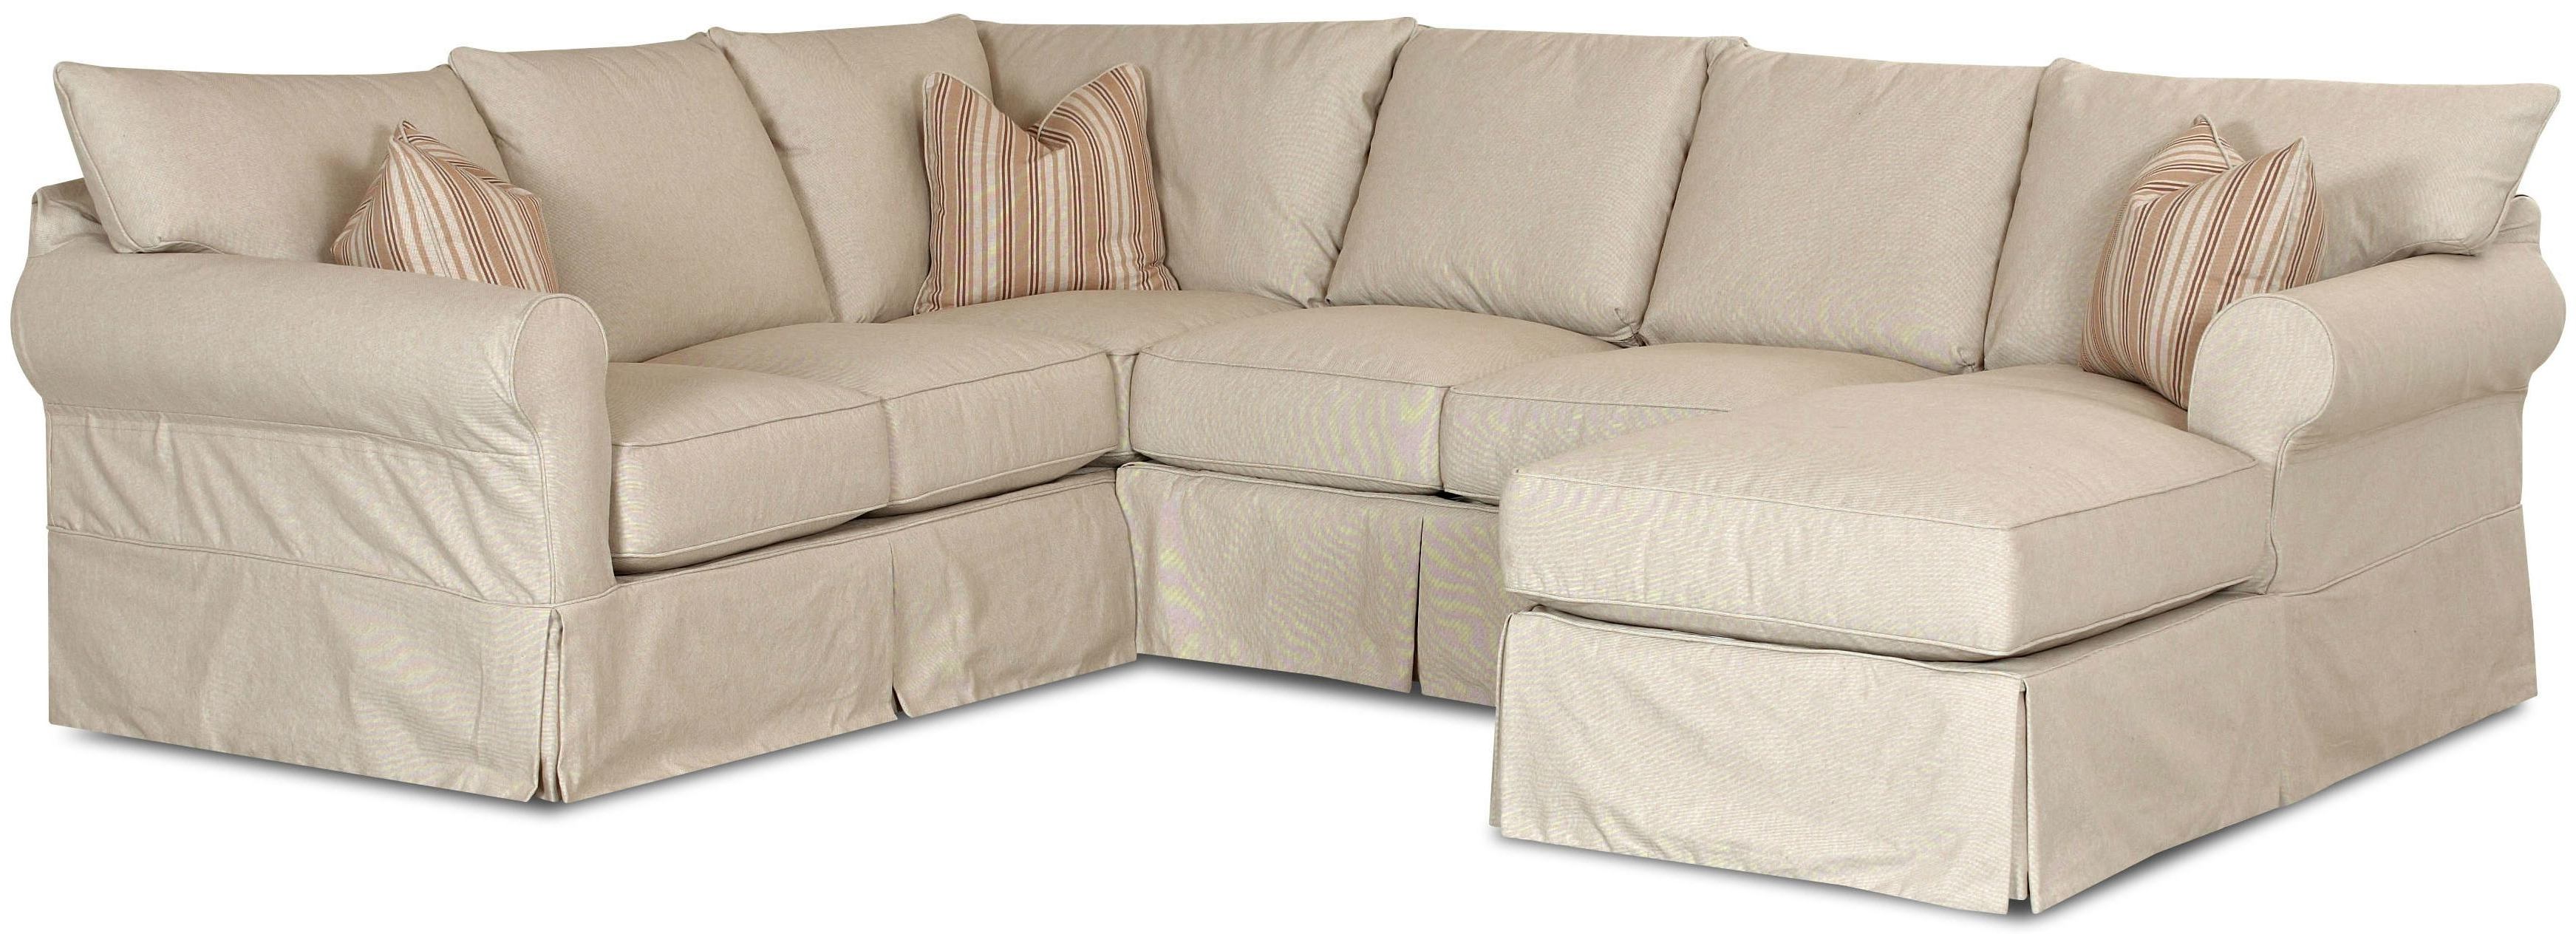 Wayfair Sofa (View 14 of 15)